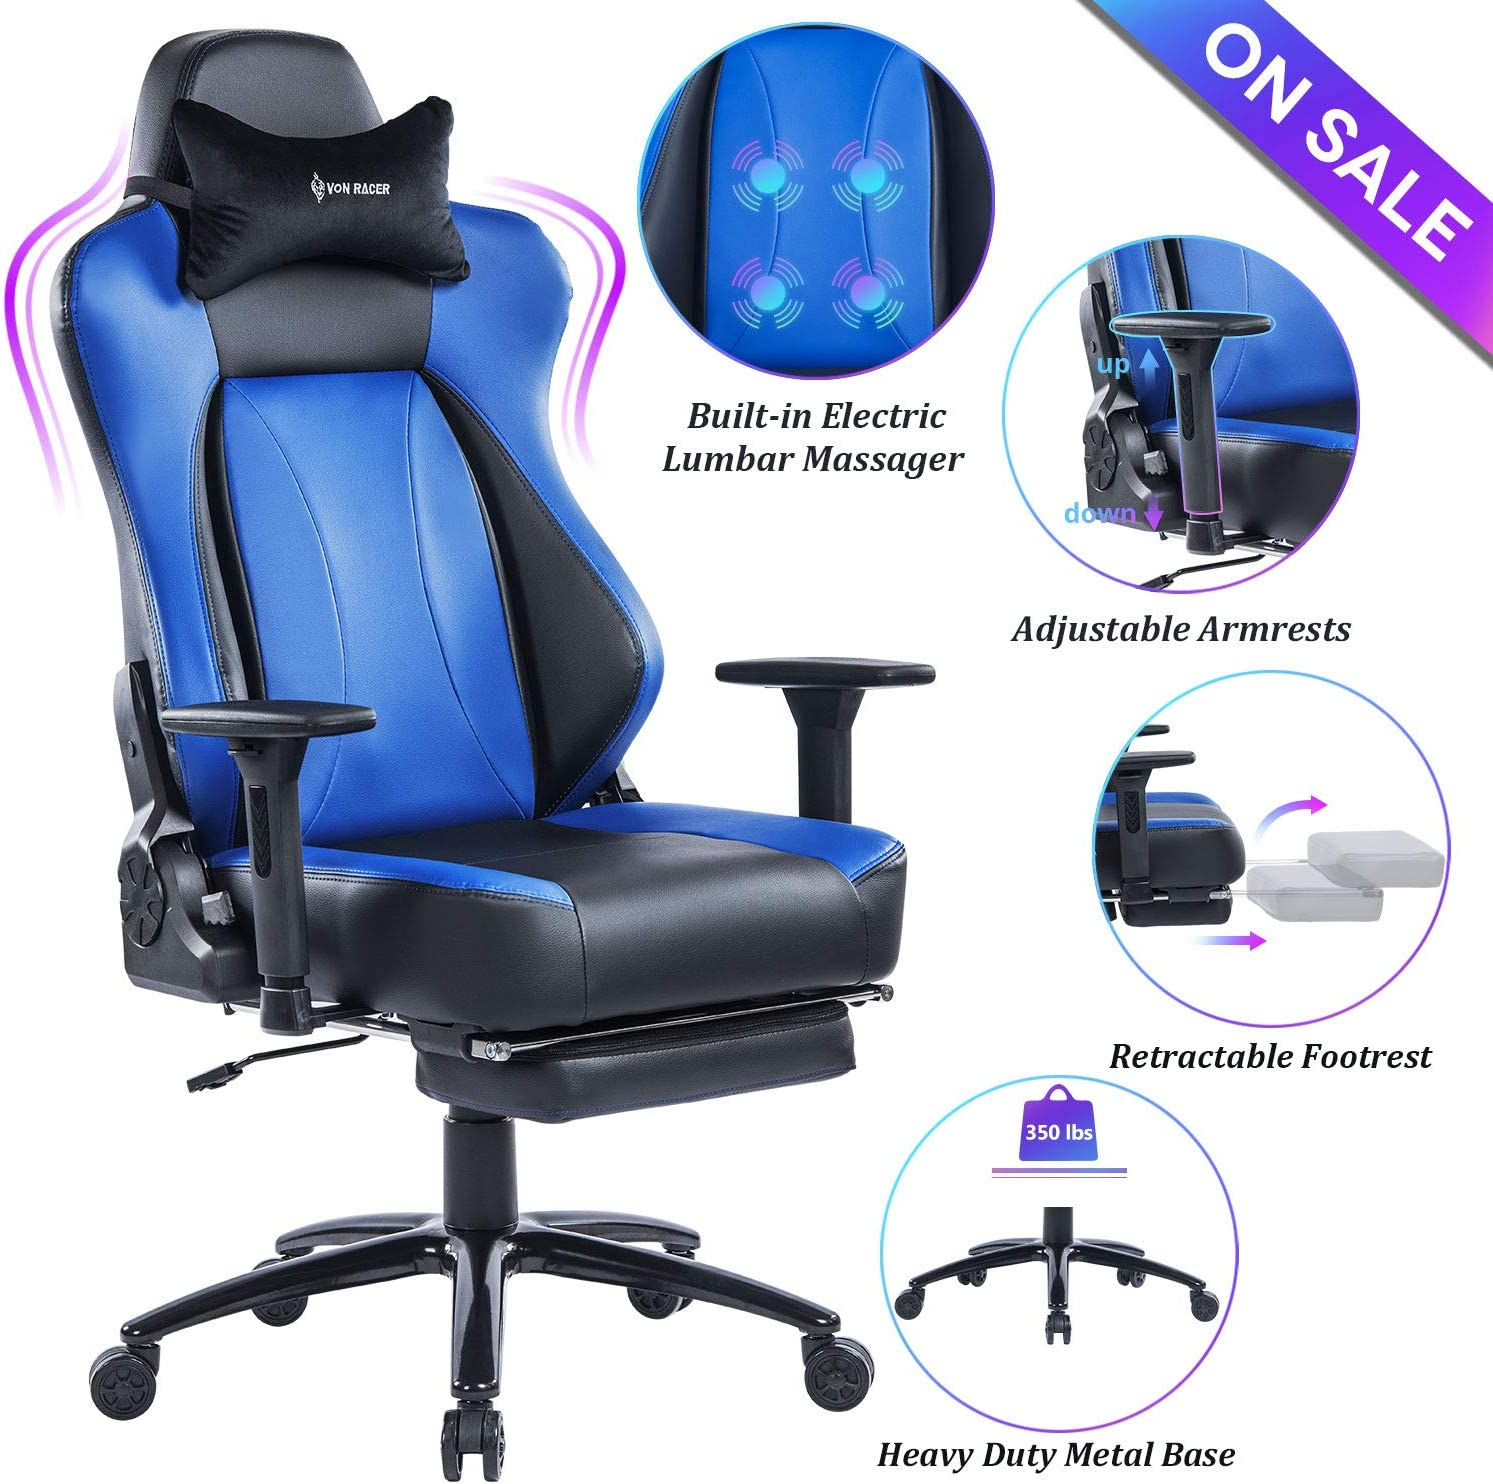 VON RACER Big & Tall Massage Reclining Gaming Chair Metal Base - Adjustable Back Angle and Retractable Footrest Ergonomic High-Back Leather Racing Executive Computer Desk Office Chair, Gray